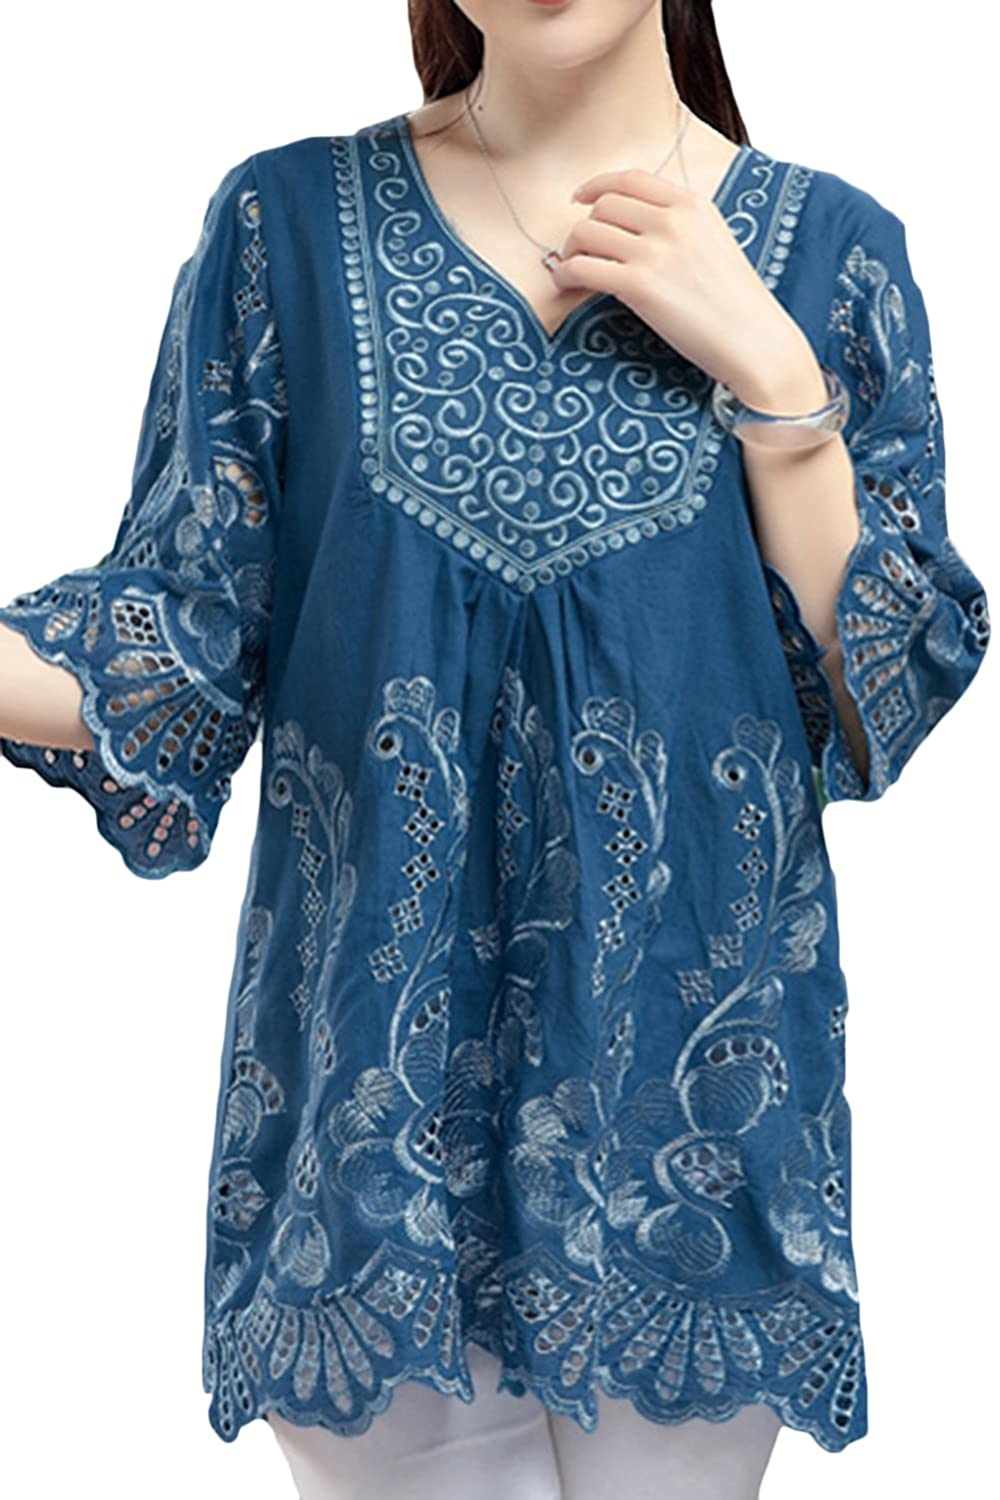 77882fb36af Material:Cotton linen. The linen tunics are Soft,Lightweight and  Comfortable. Package Content: 1 x Women top. Thin and cool,good for Summer ,Autumn,Spring.